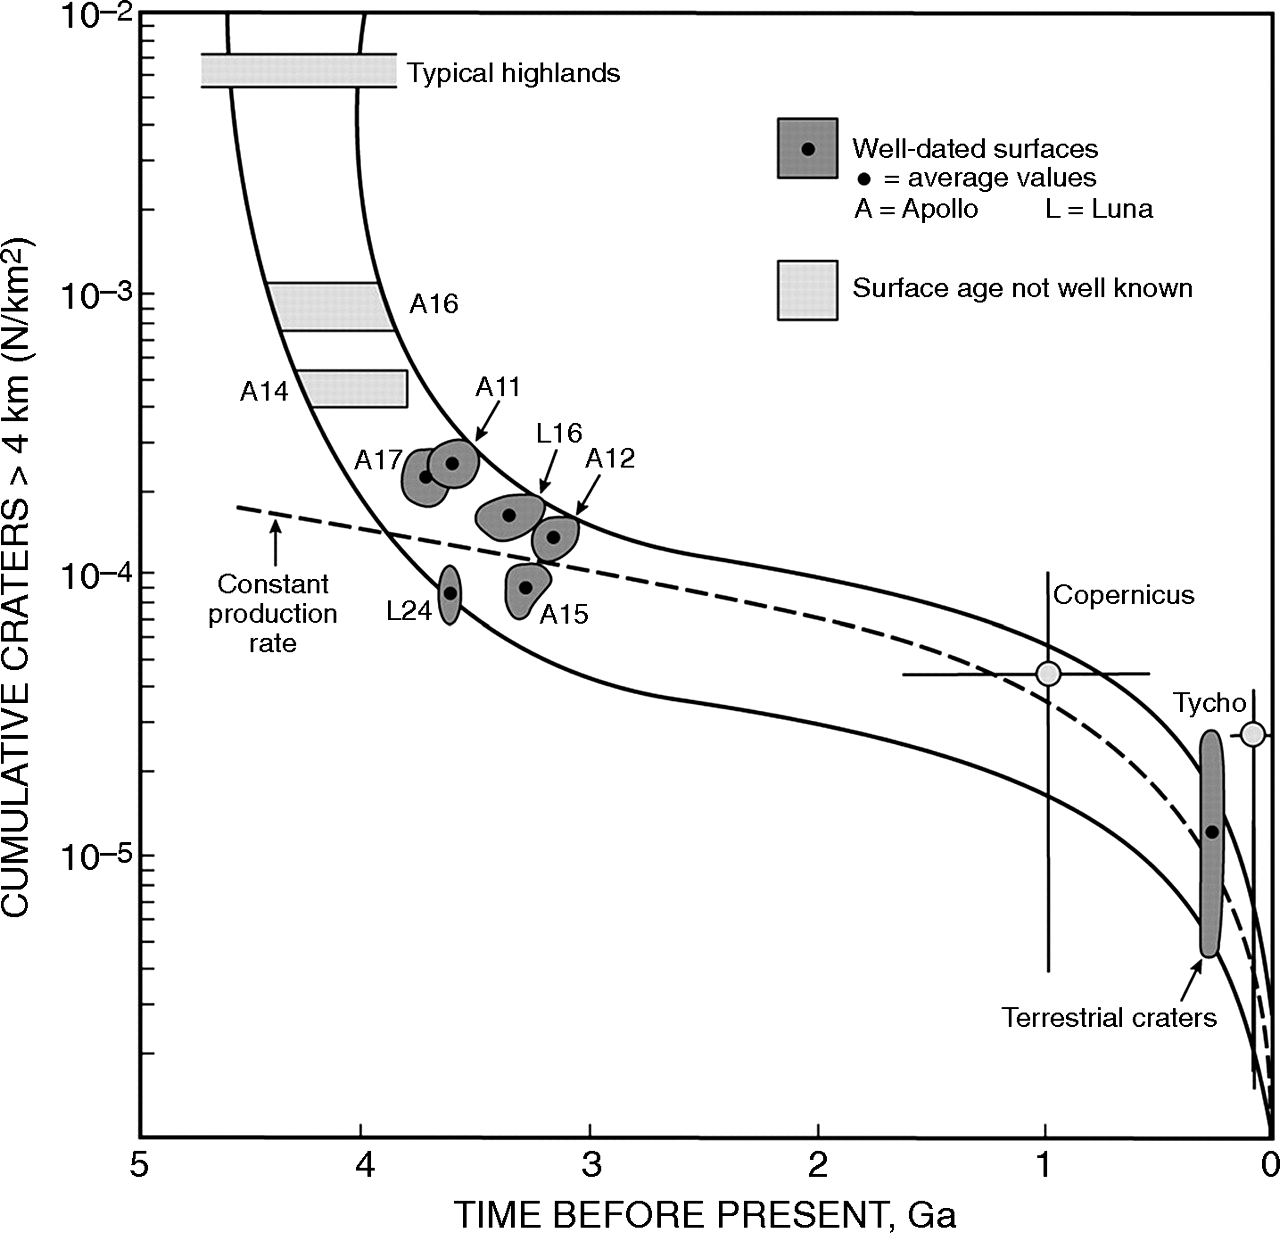 hight resolution of age of lunar surfaces versus impact crater density